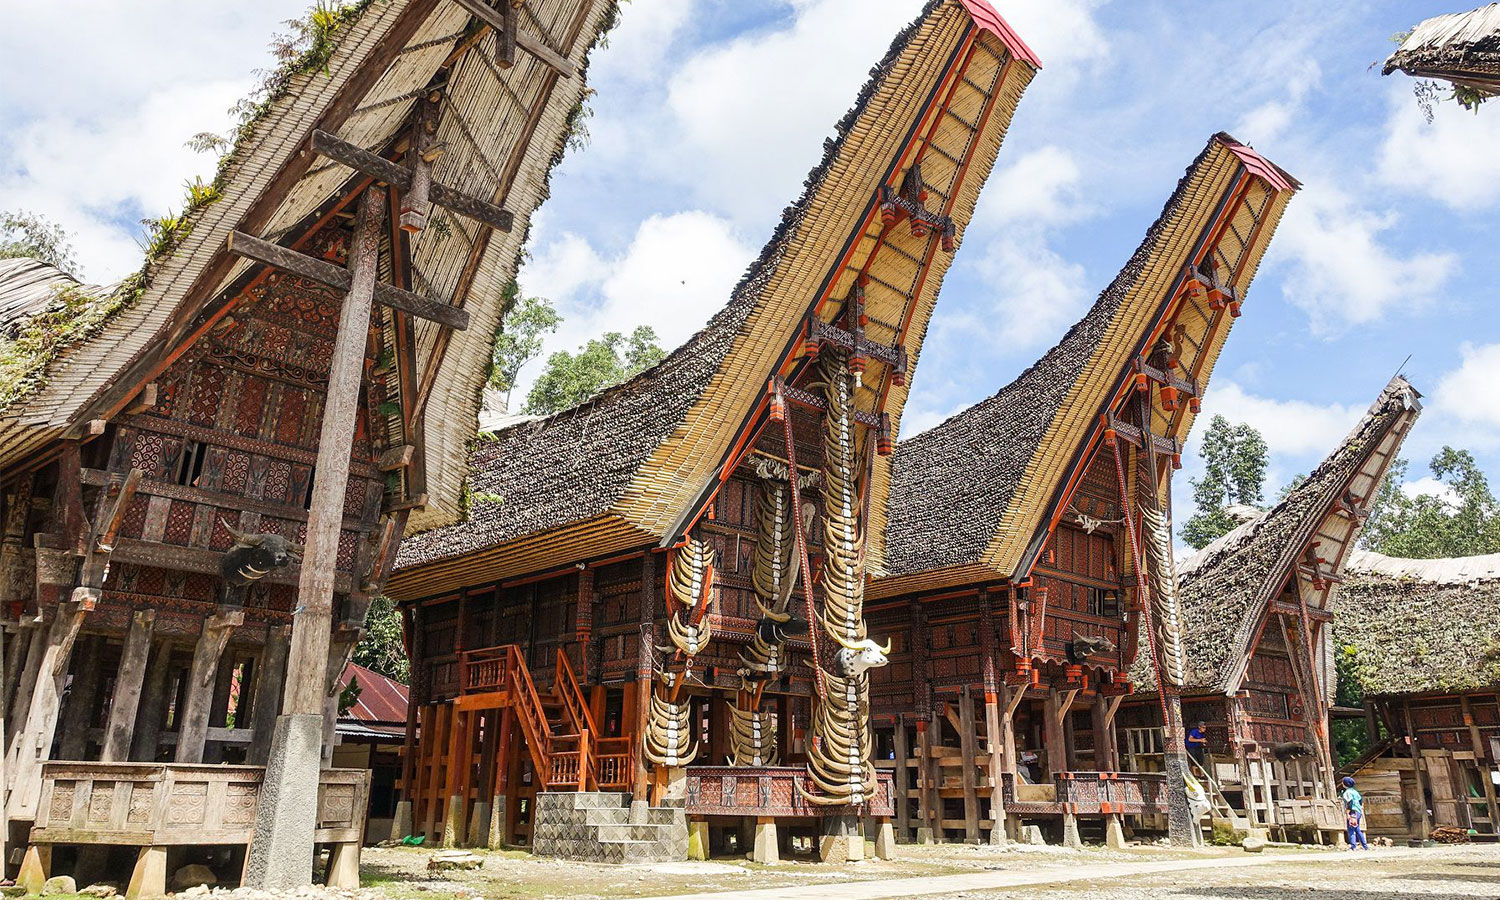 Toraja Culture and Land of Phinisi Expert, Tana Beru  7 Days